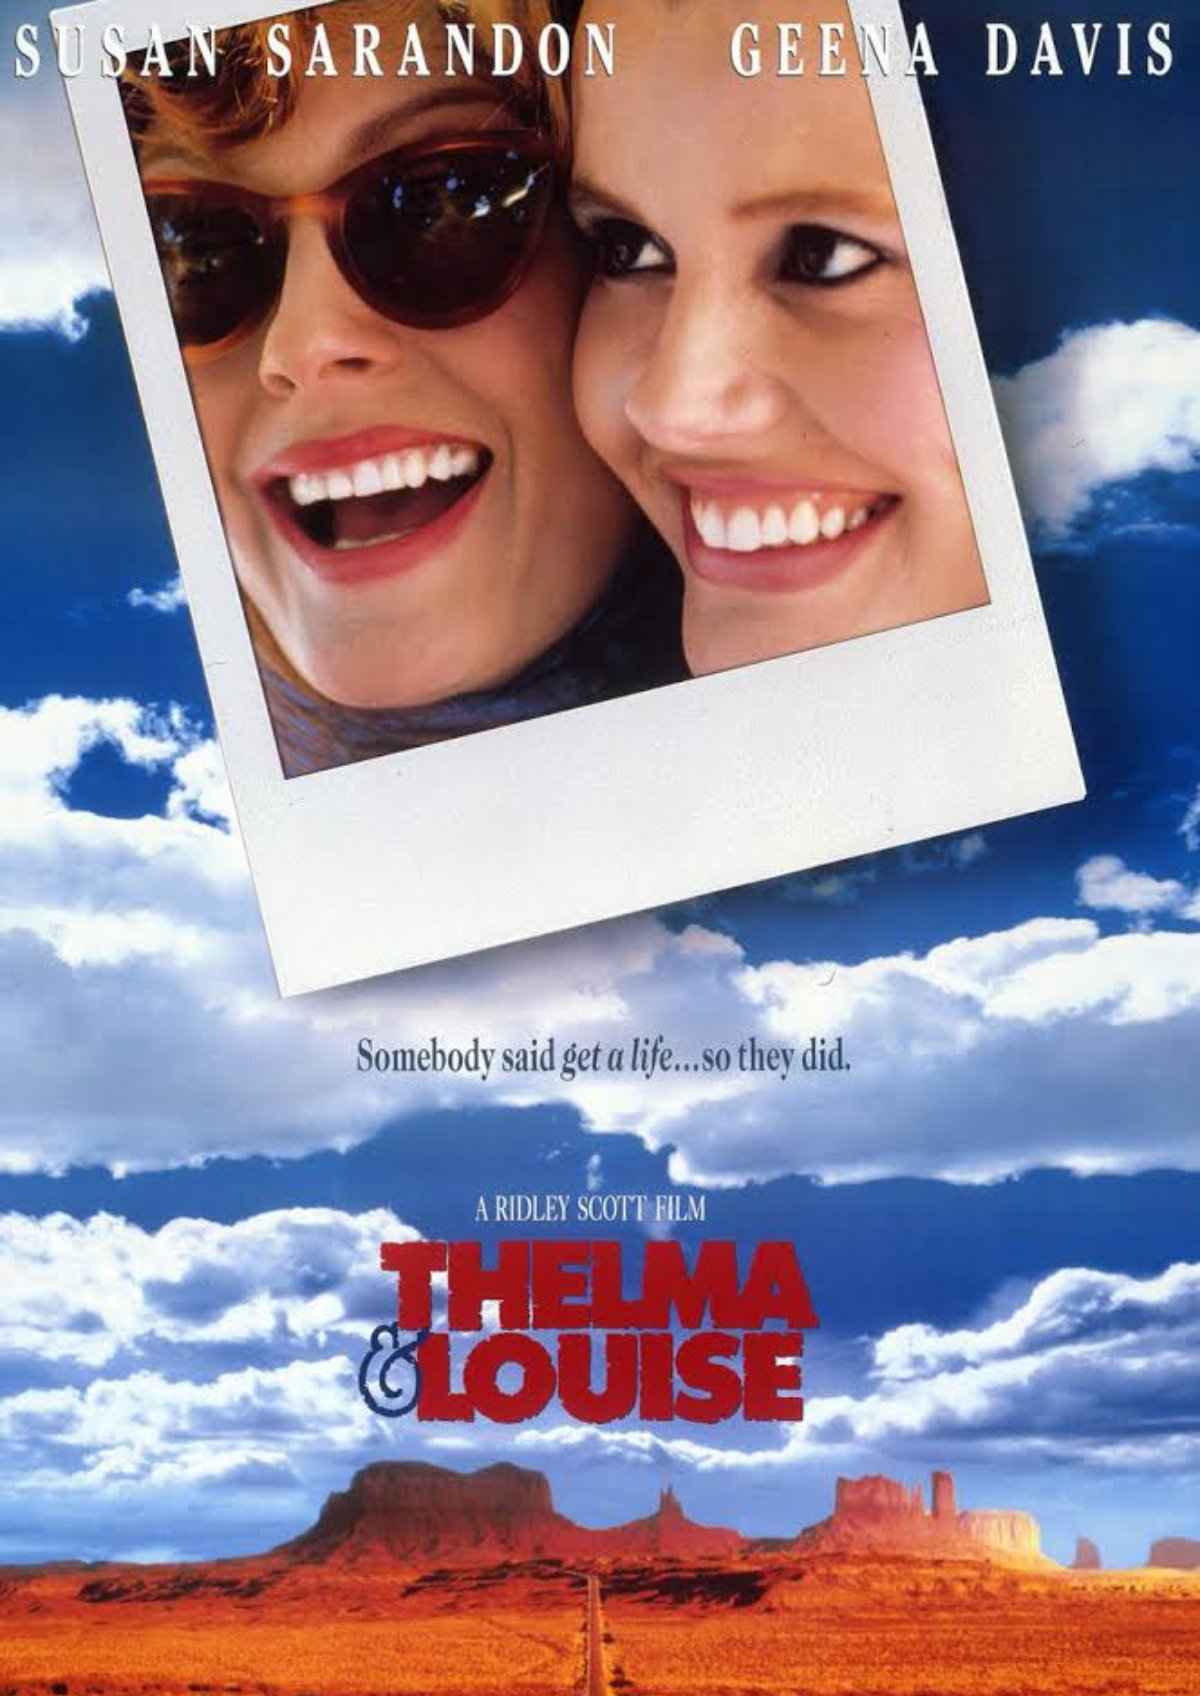 'Thelma And Louise' movie poster